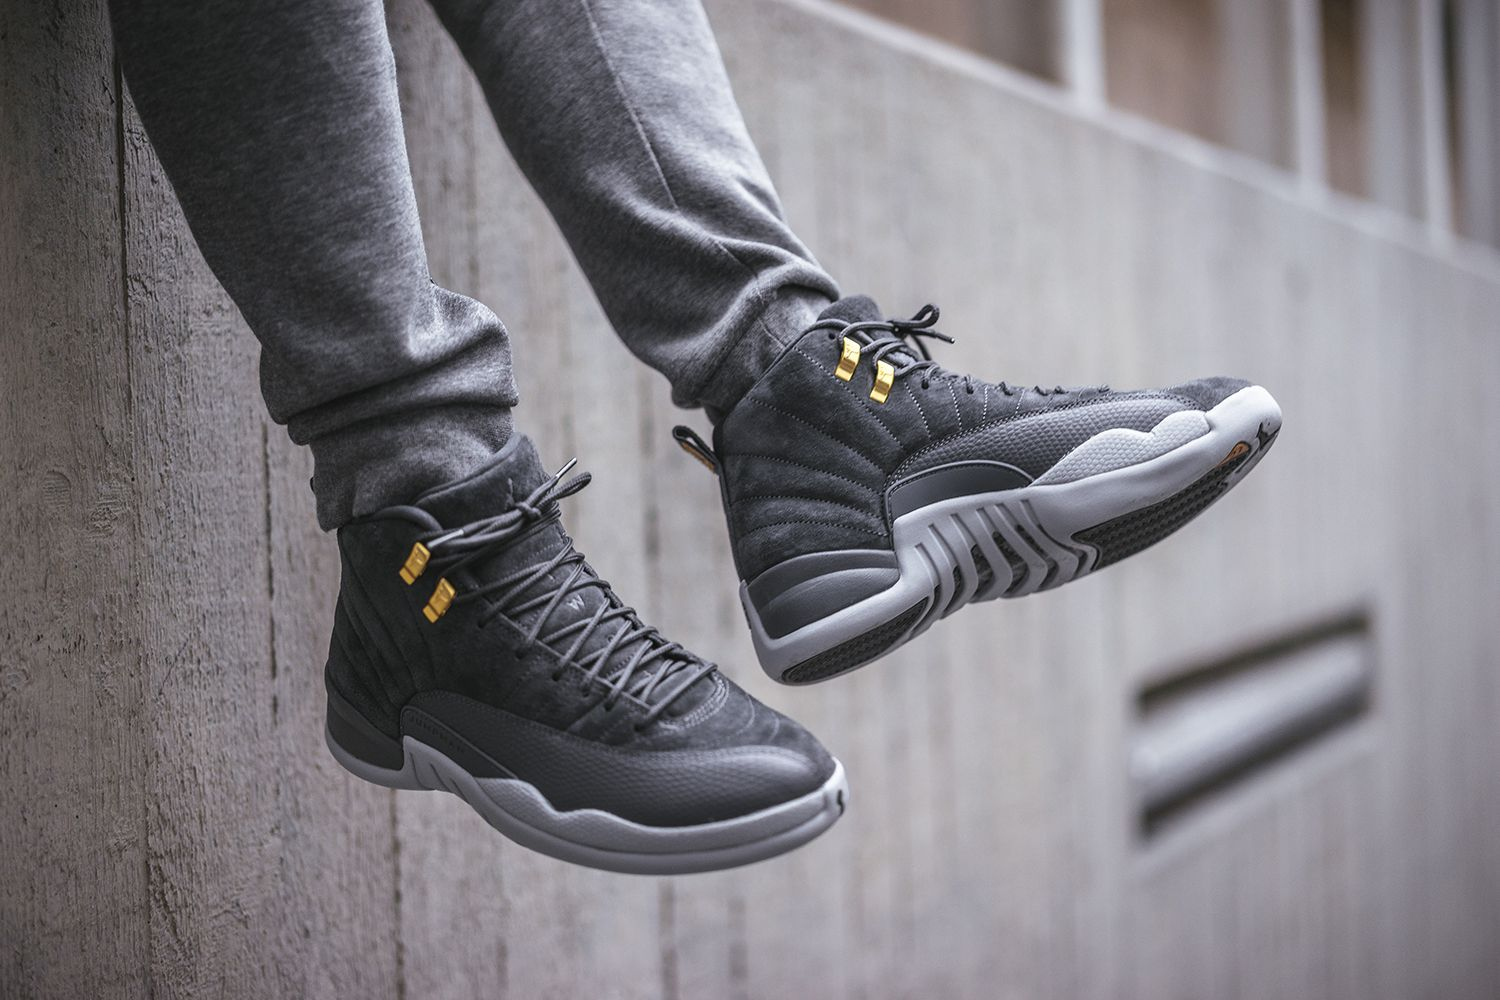 newest d212e bf864 Air Jordan 12 Dark Grey coming soon. Who will cop    by  bstnstore